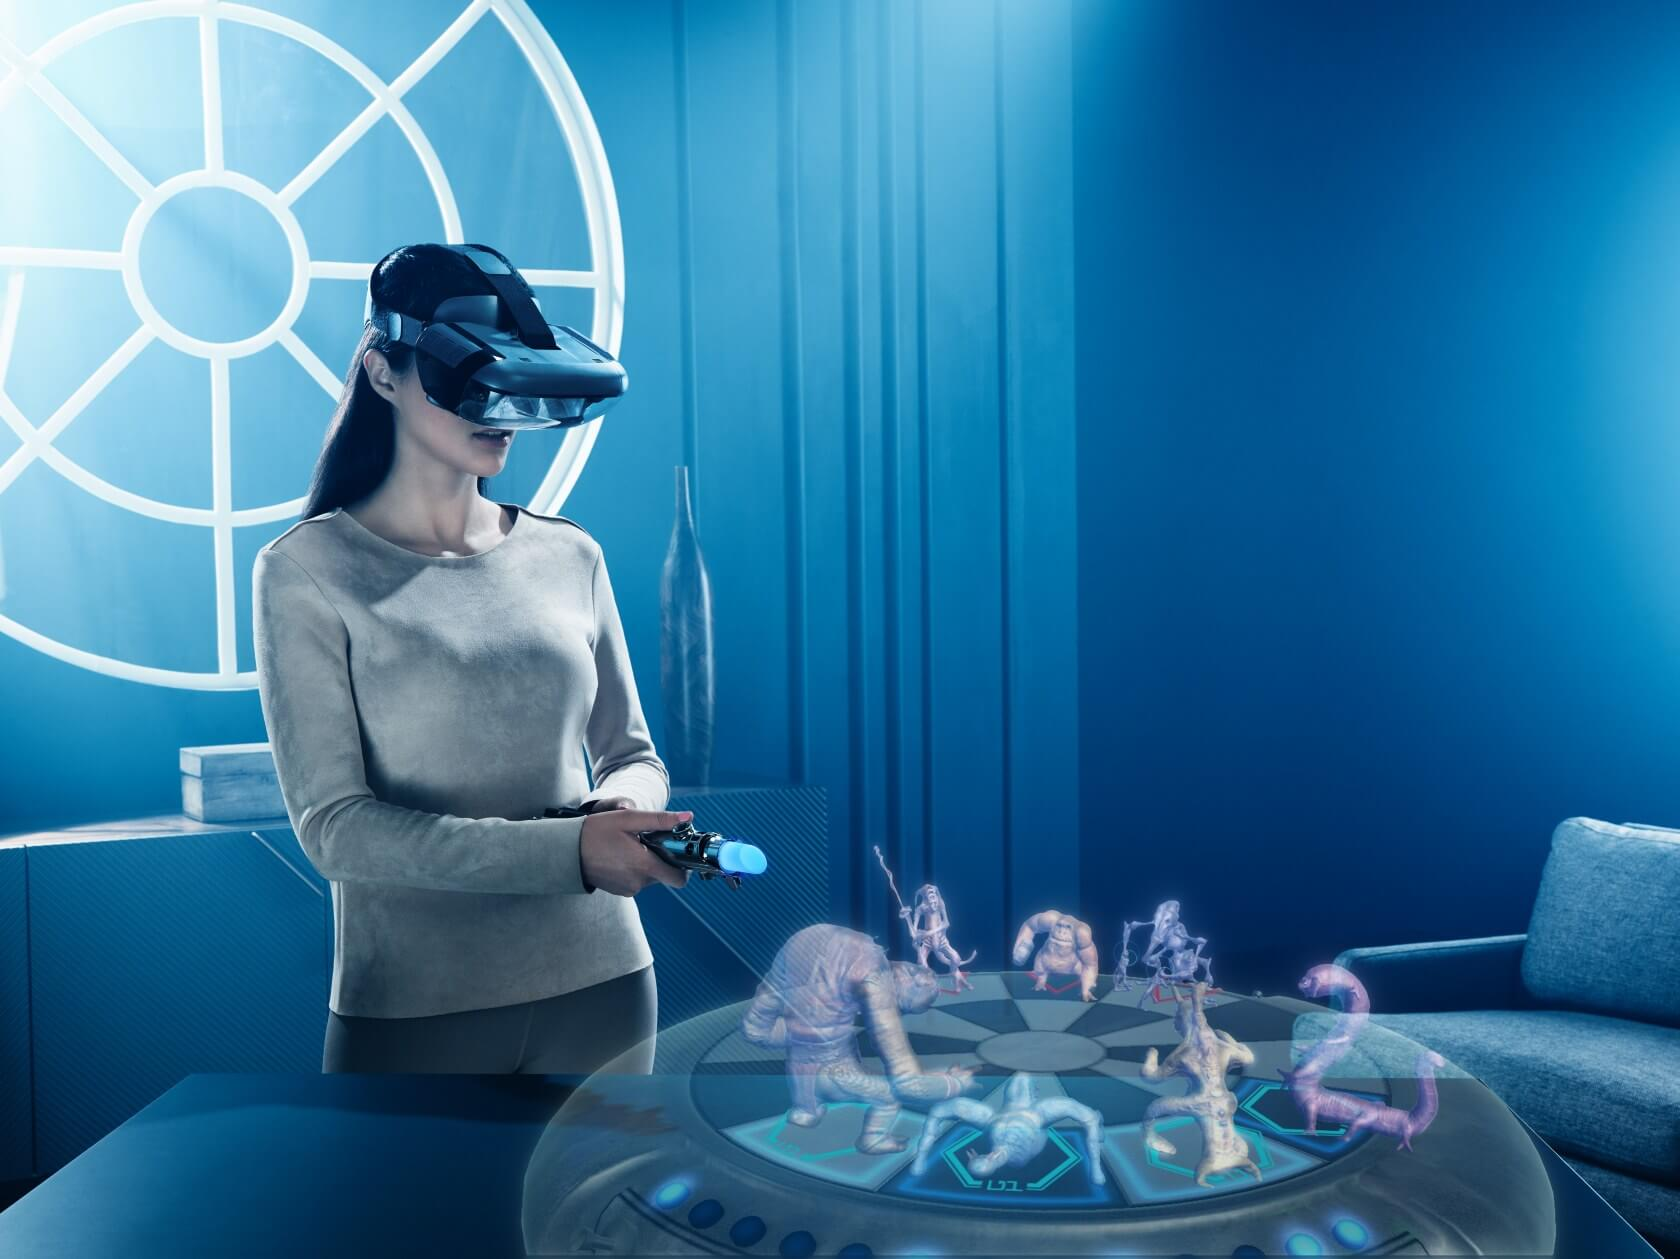 Jedi Challenges app allows users to play holochess without a headset